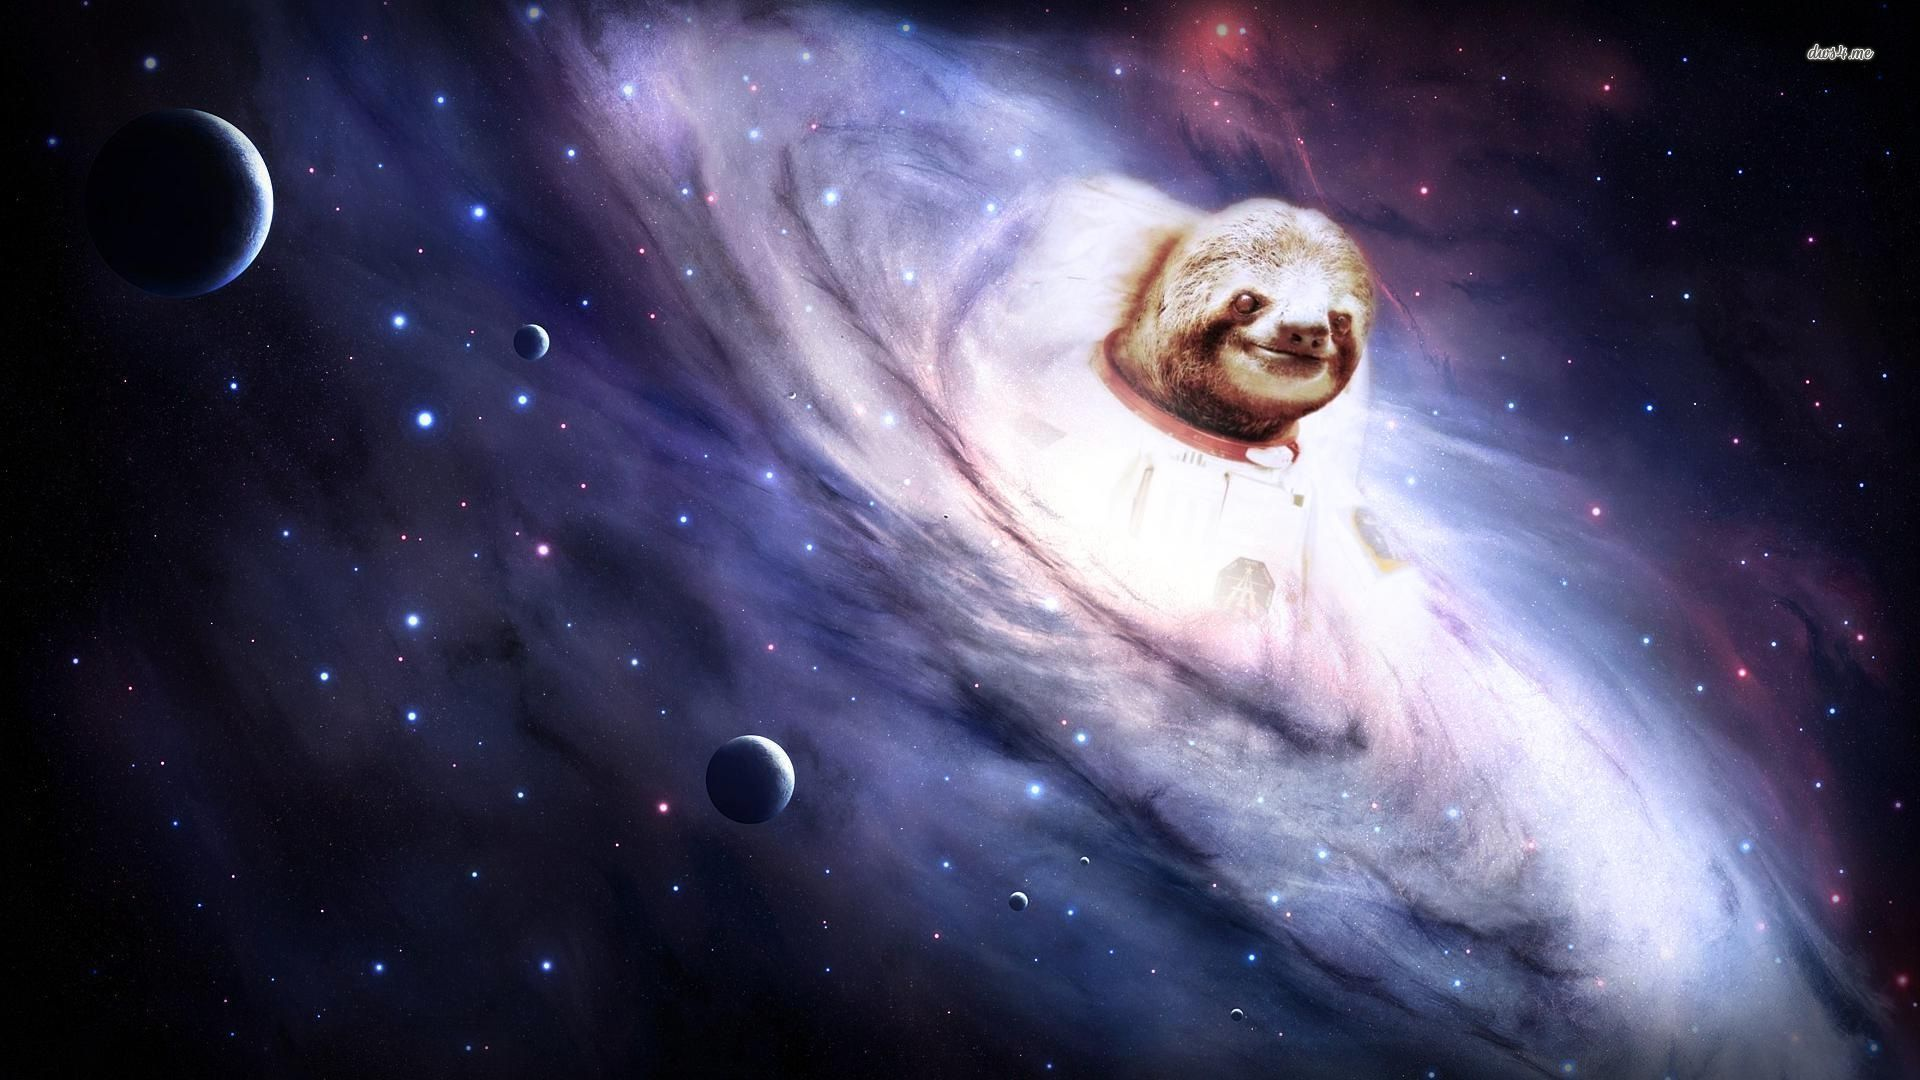 Space Sloth 1920x1080